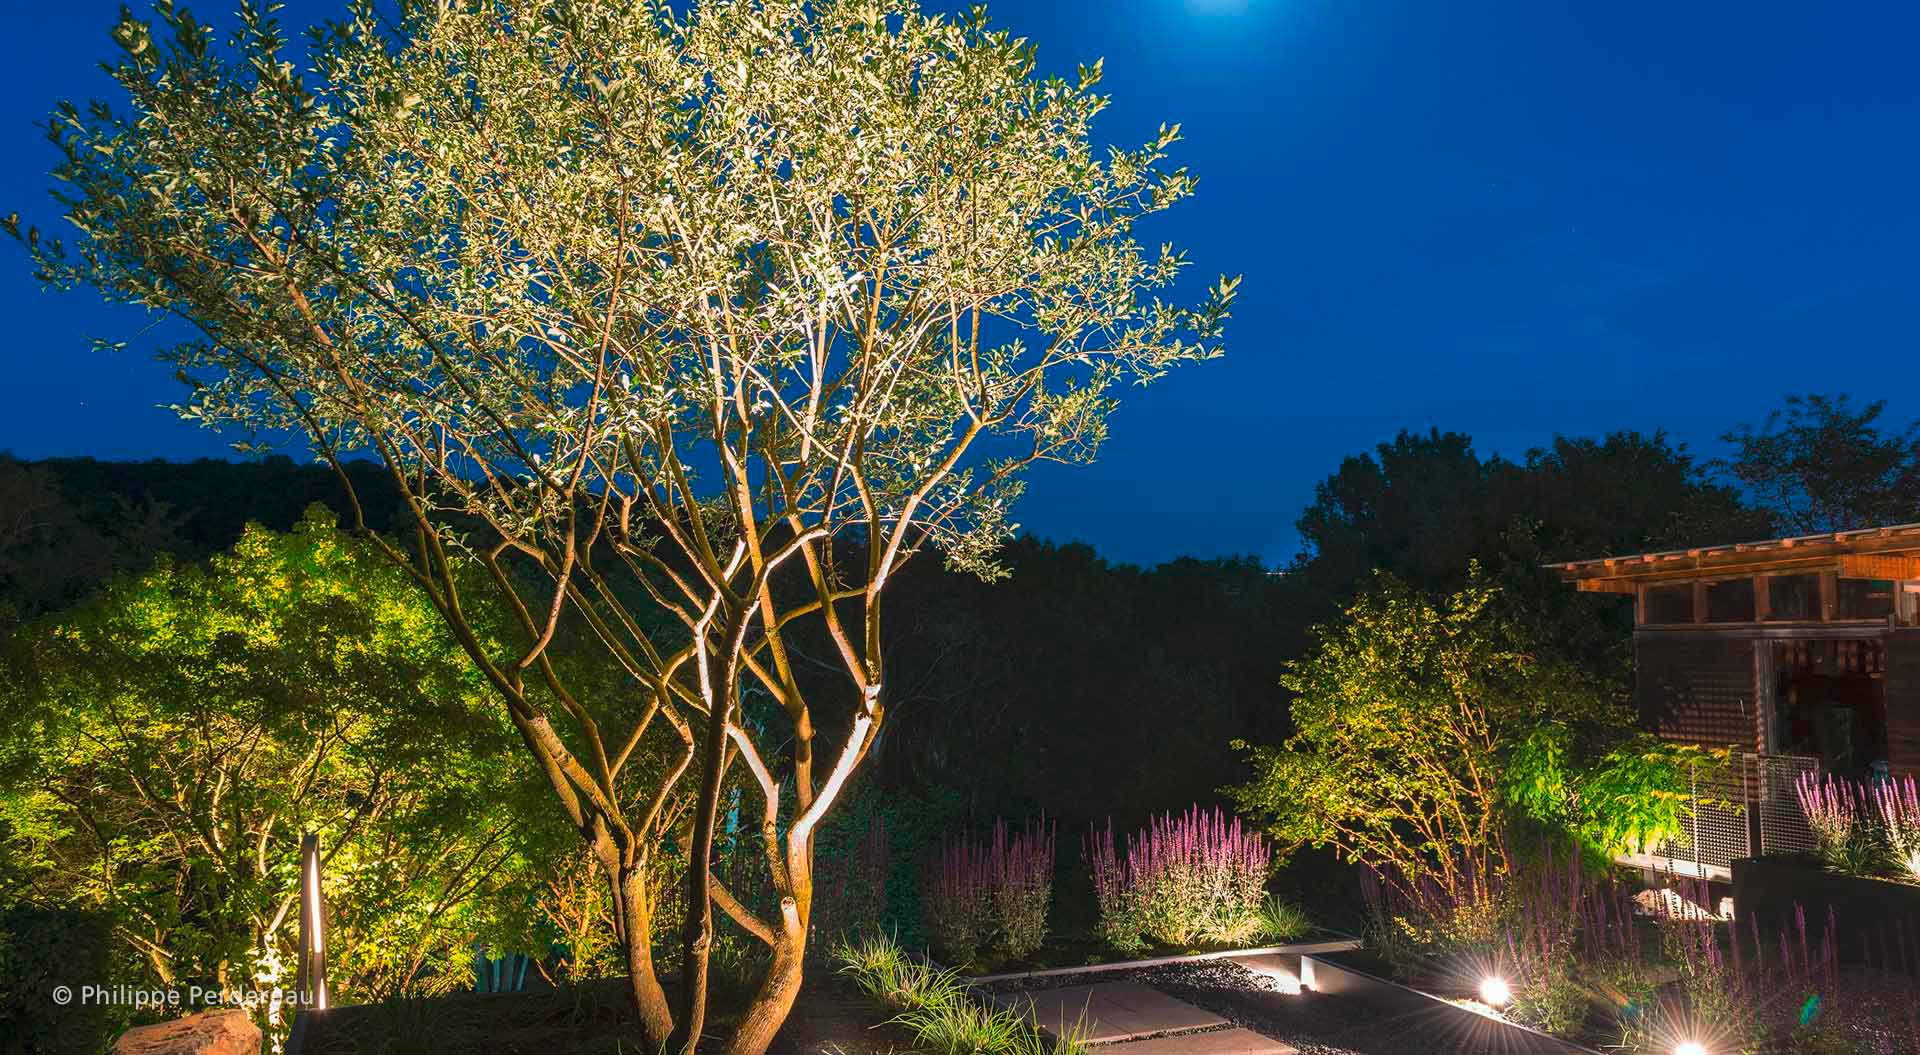 Slope garden at night where the lightings shine out